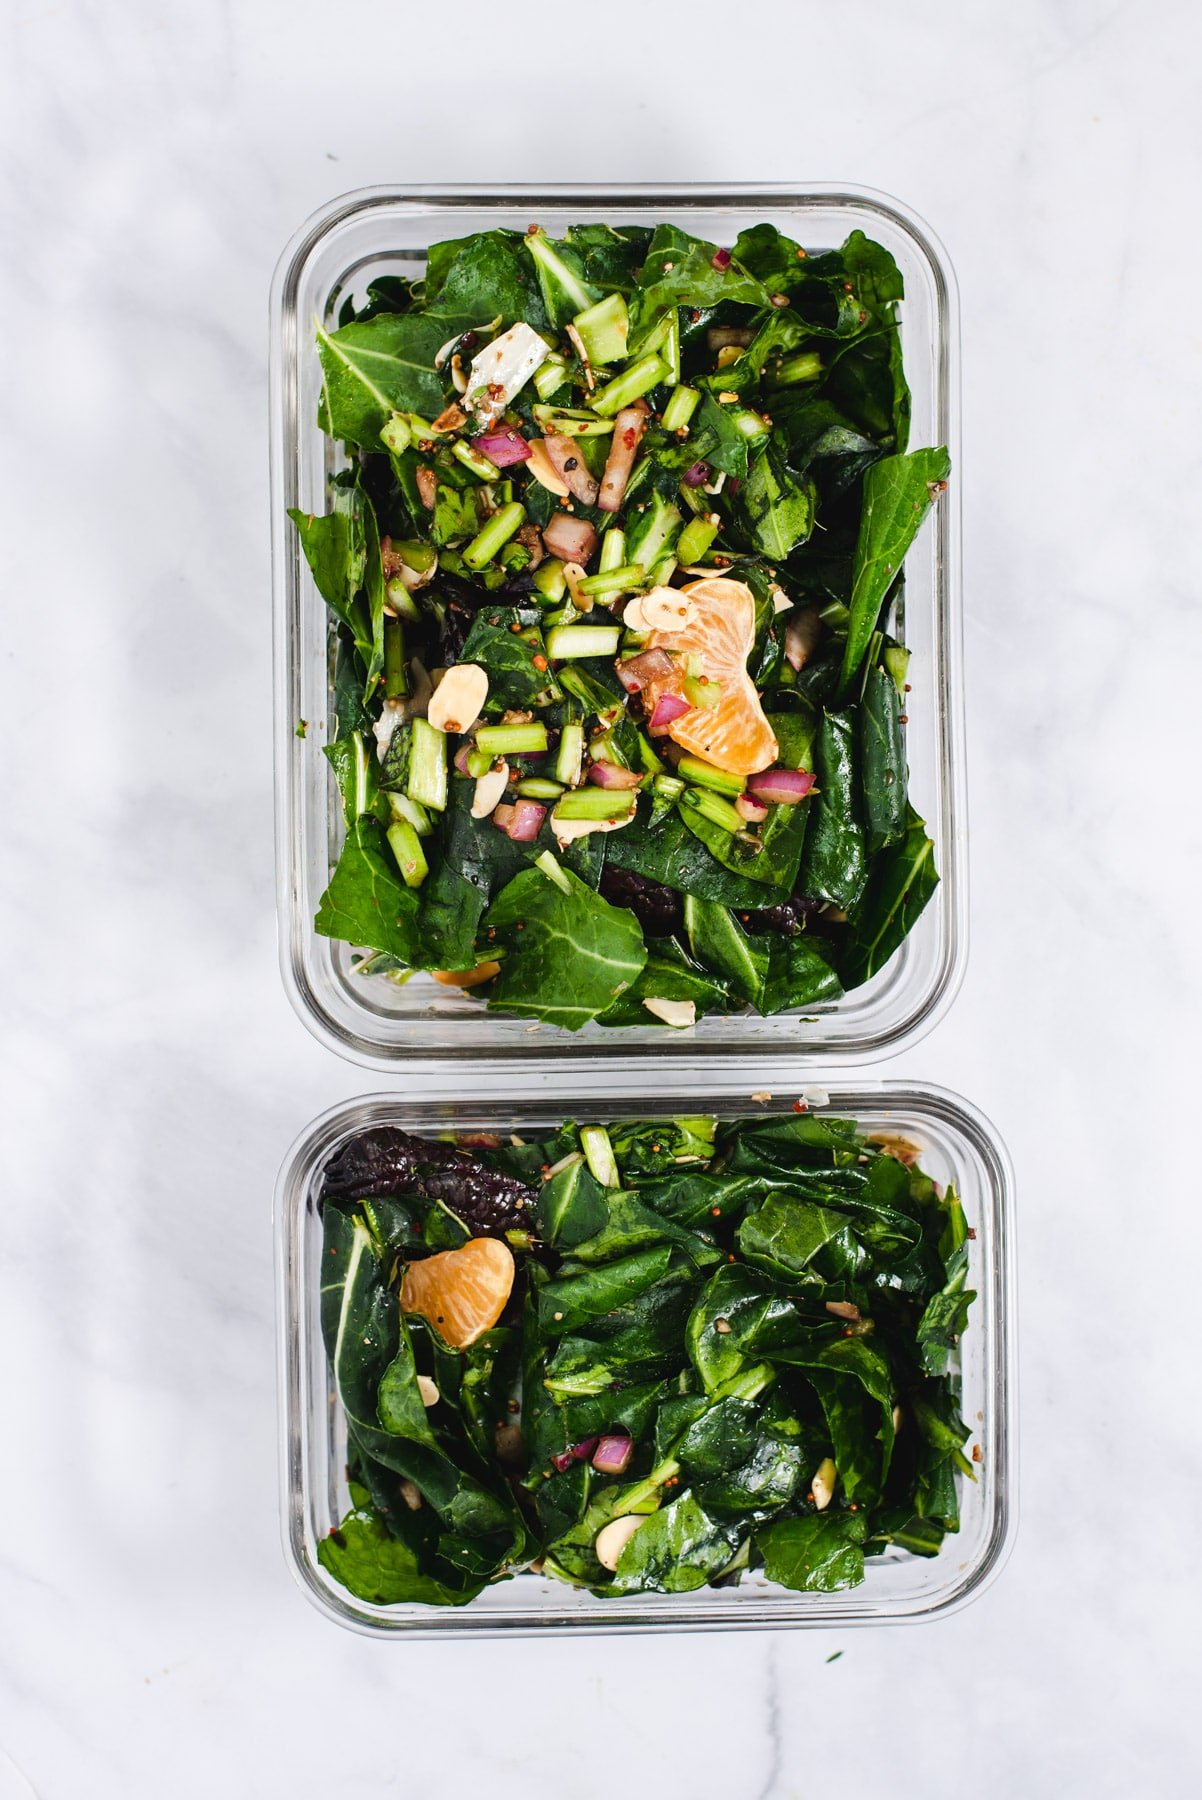 Two servings of salad portioned into glass containesr